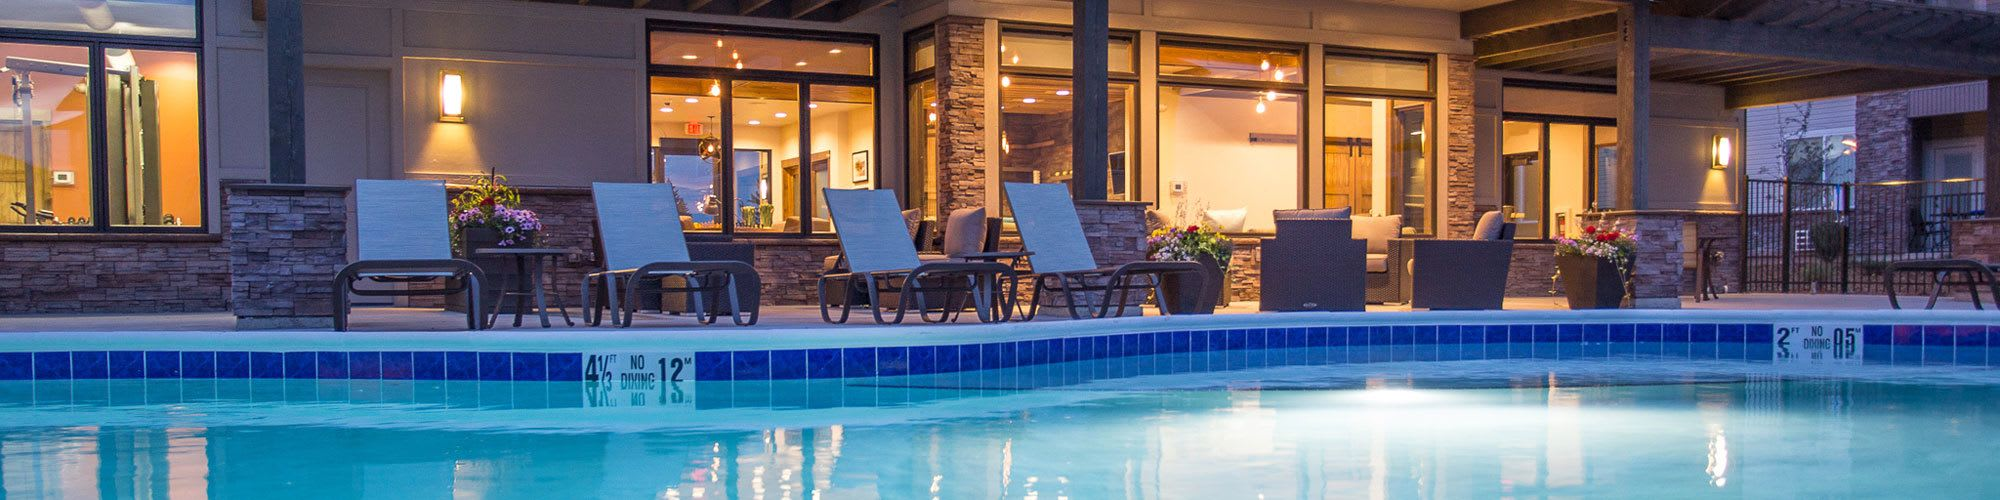 Luxury resort amenities at our apartments in Great Falls